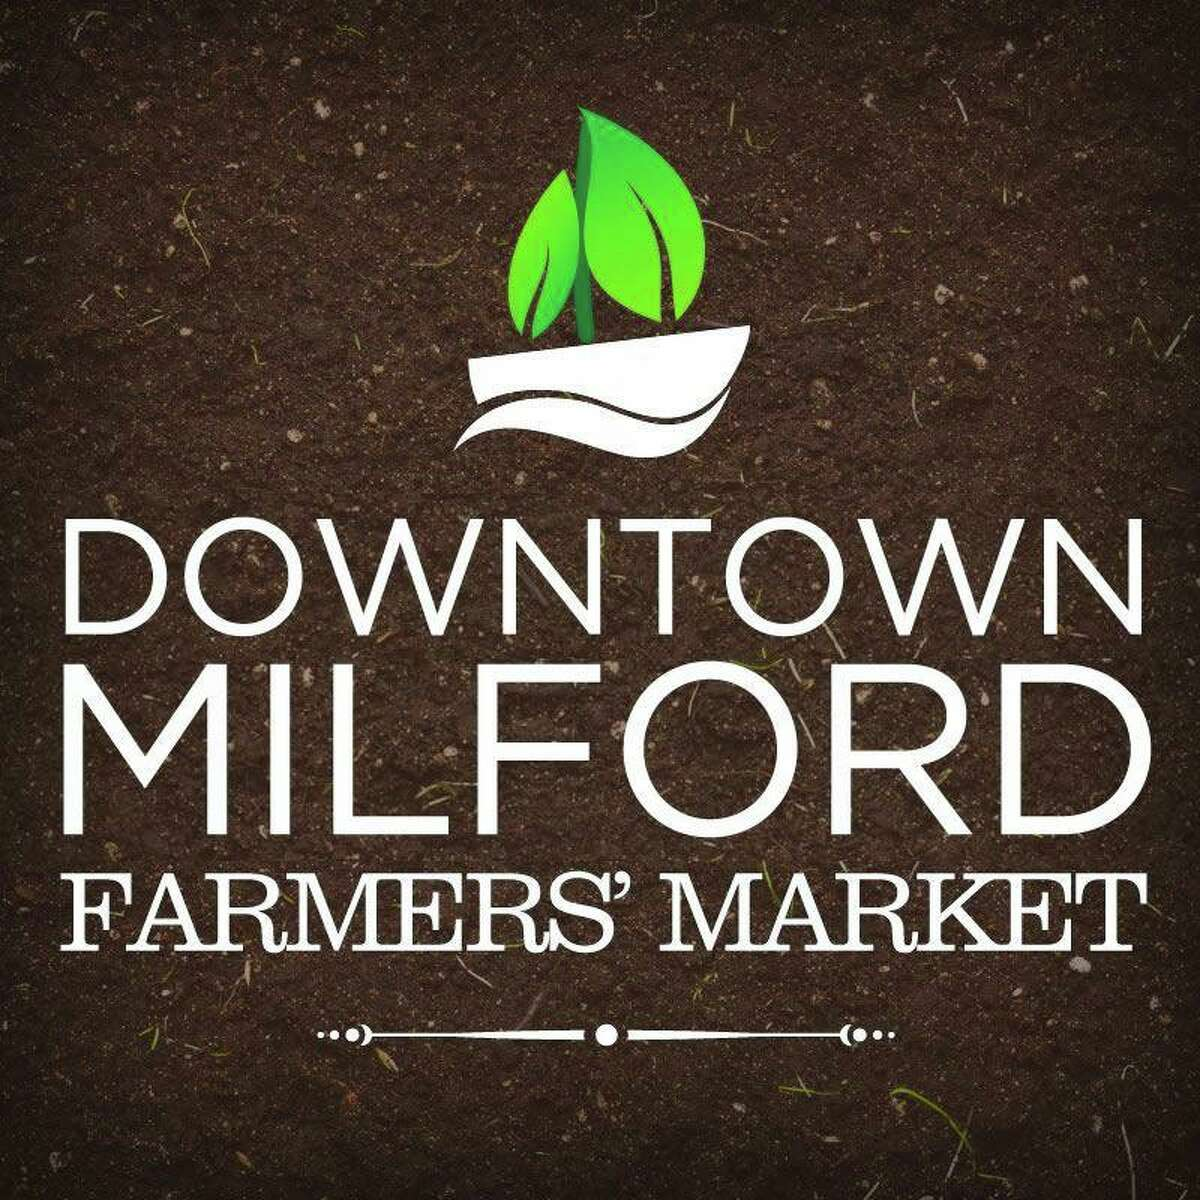 The Downtown Milford Farmers Market opens June 27 and continues Saturdays, from 9 a.m.-12:30 p.m. through Oct. 12.